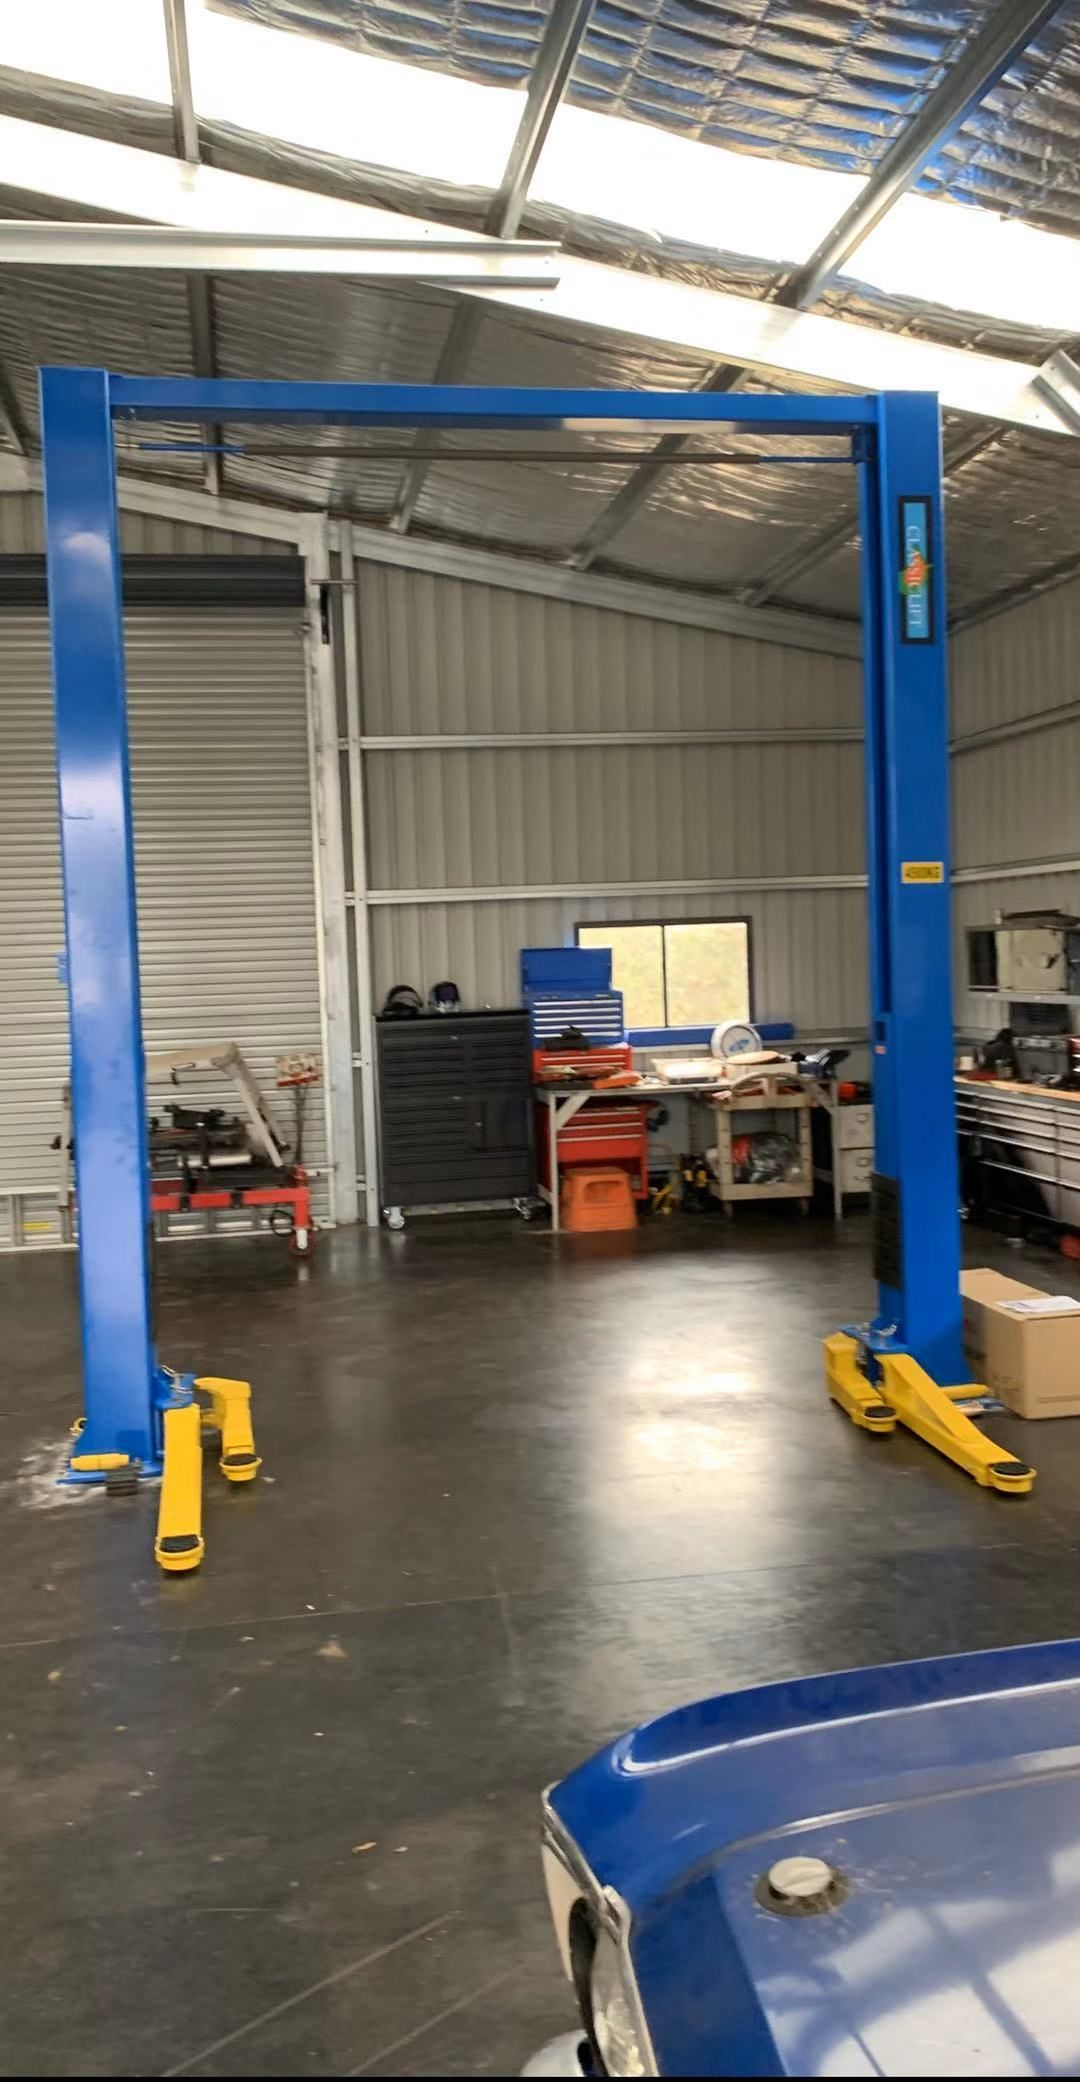 Classic 210sac 2 post 4.5tonne Car hoist, Two post lift